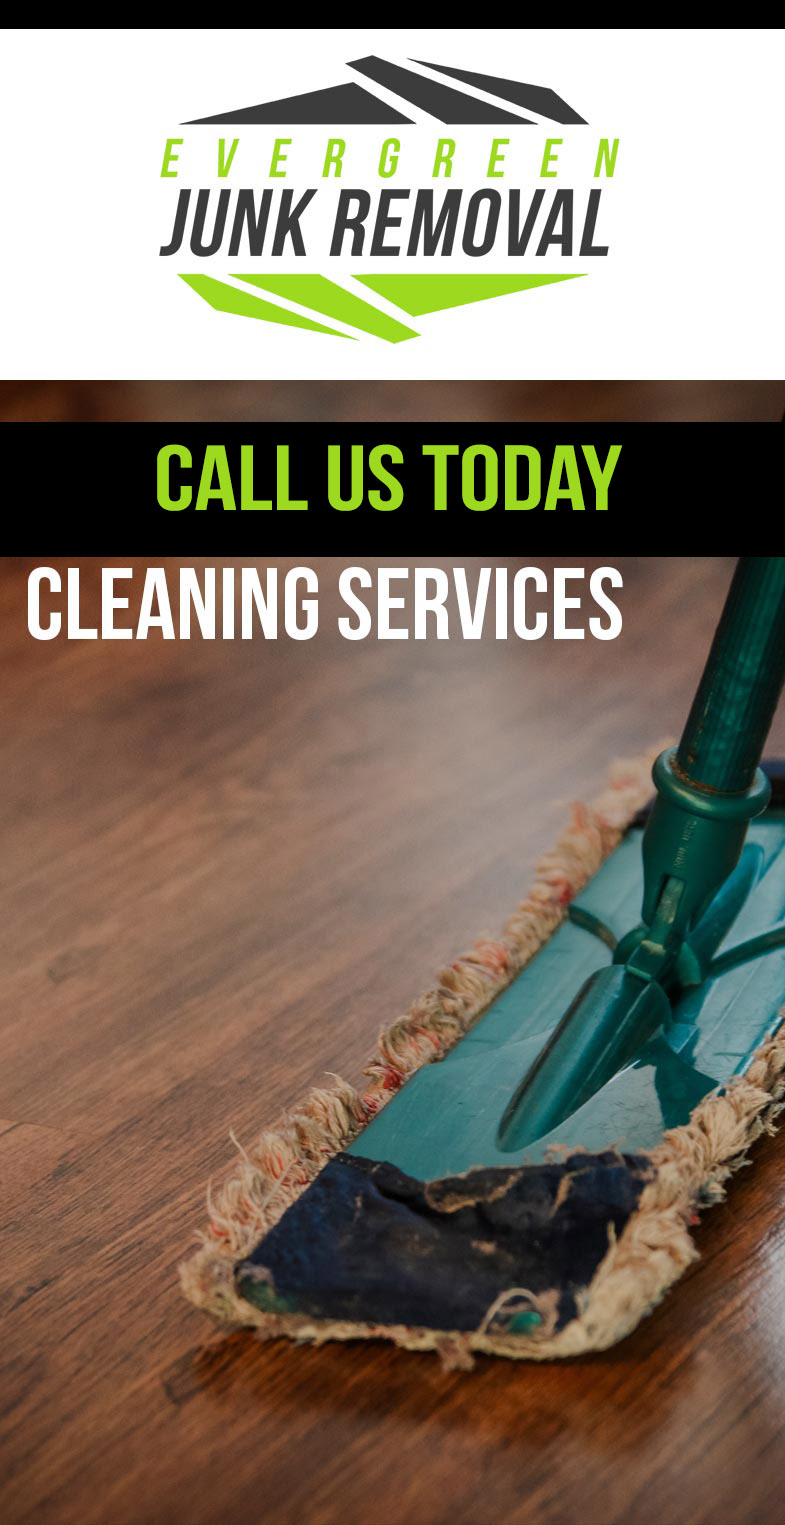 Franklin Park Cleaning Services